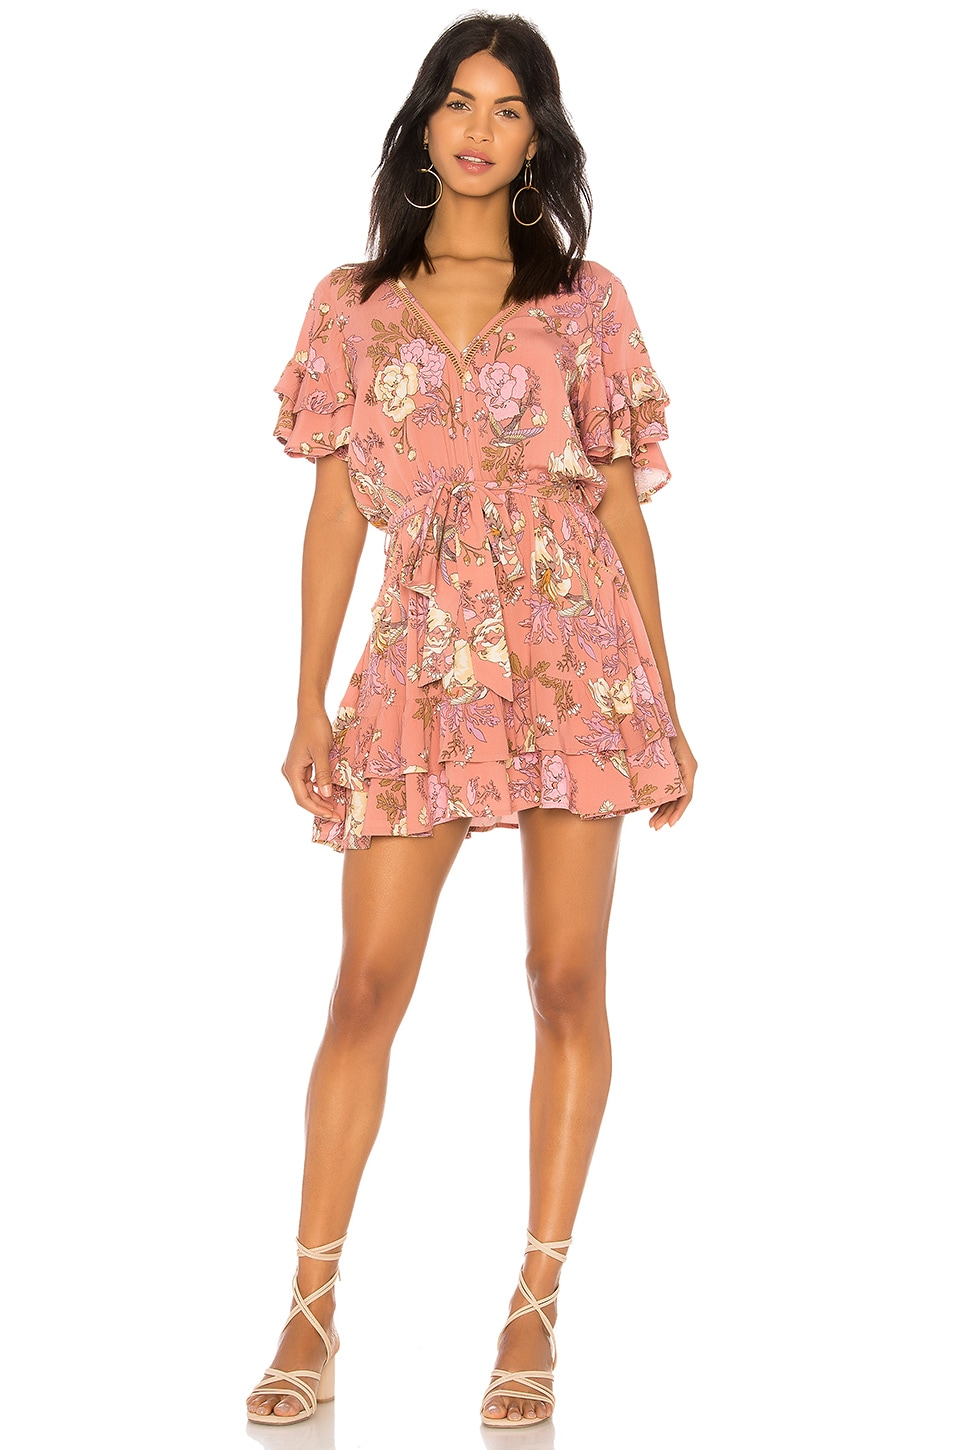 Spell & The Gypsy Collective Rosa Play Dress in Blush